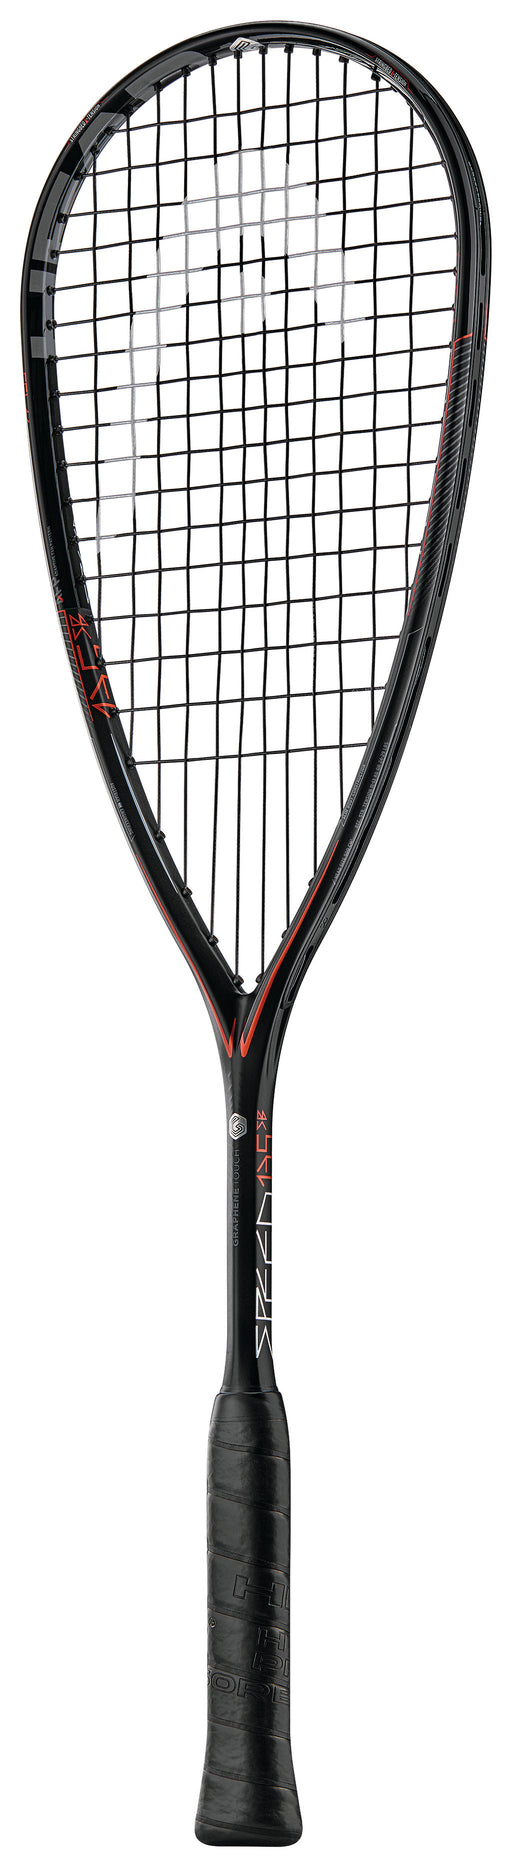 Head Graphene Touch 360 Speed 135 Slim Body Squash Racquet (Black/Red) - atr-sports